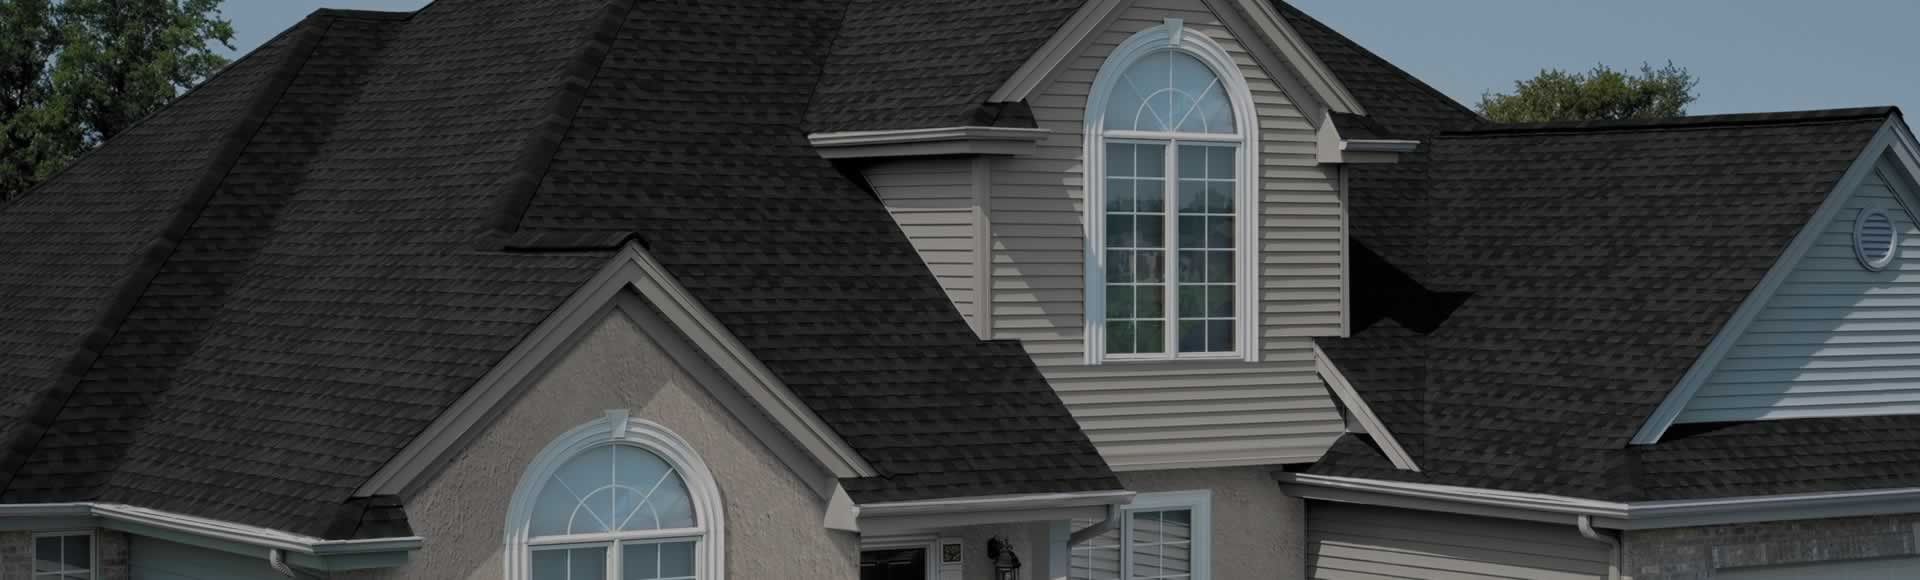 Gutter Pro Seamless Gutter And Supply Company